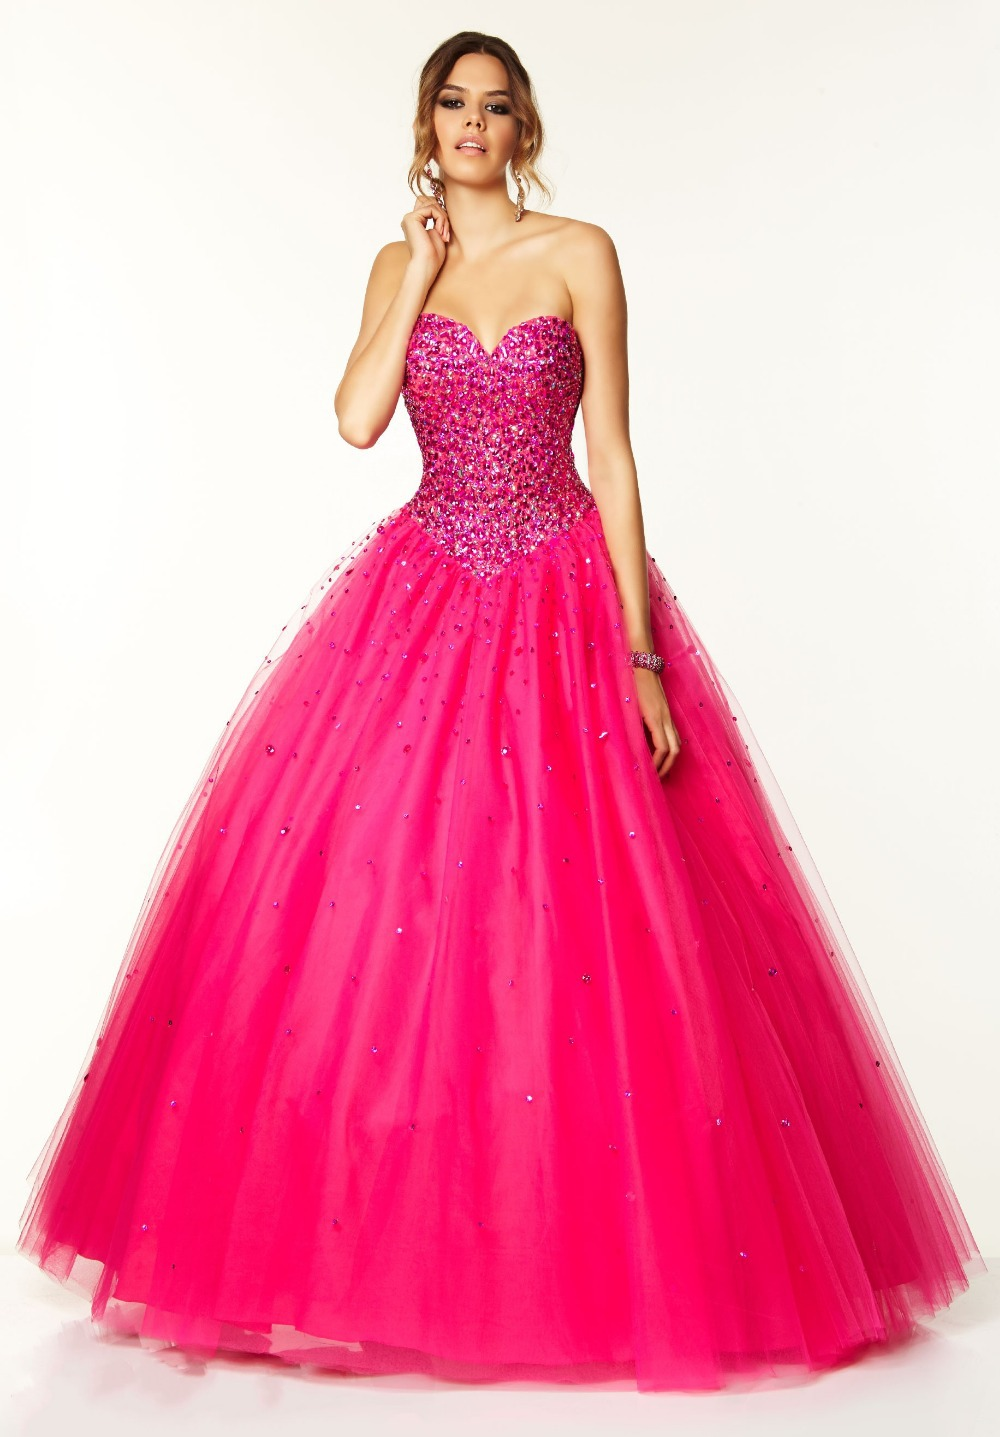 Ball gown prom dresses 2014 - Get Quotations Abendkleider Long 2014 Crystal Hot Pink Prom Dress 2014 Vestido De Formatura Long Elegant Prom Dresses